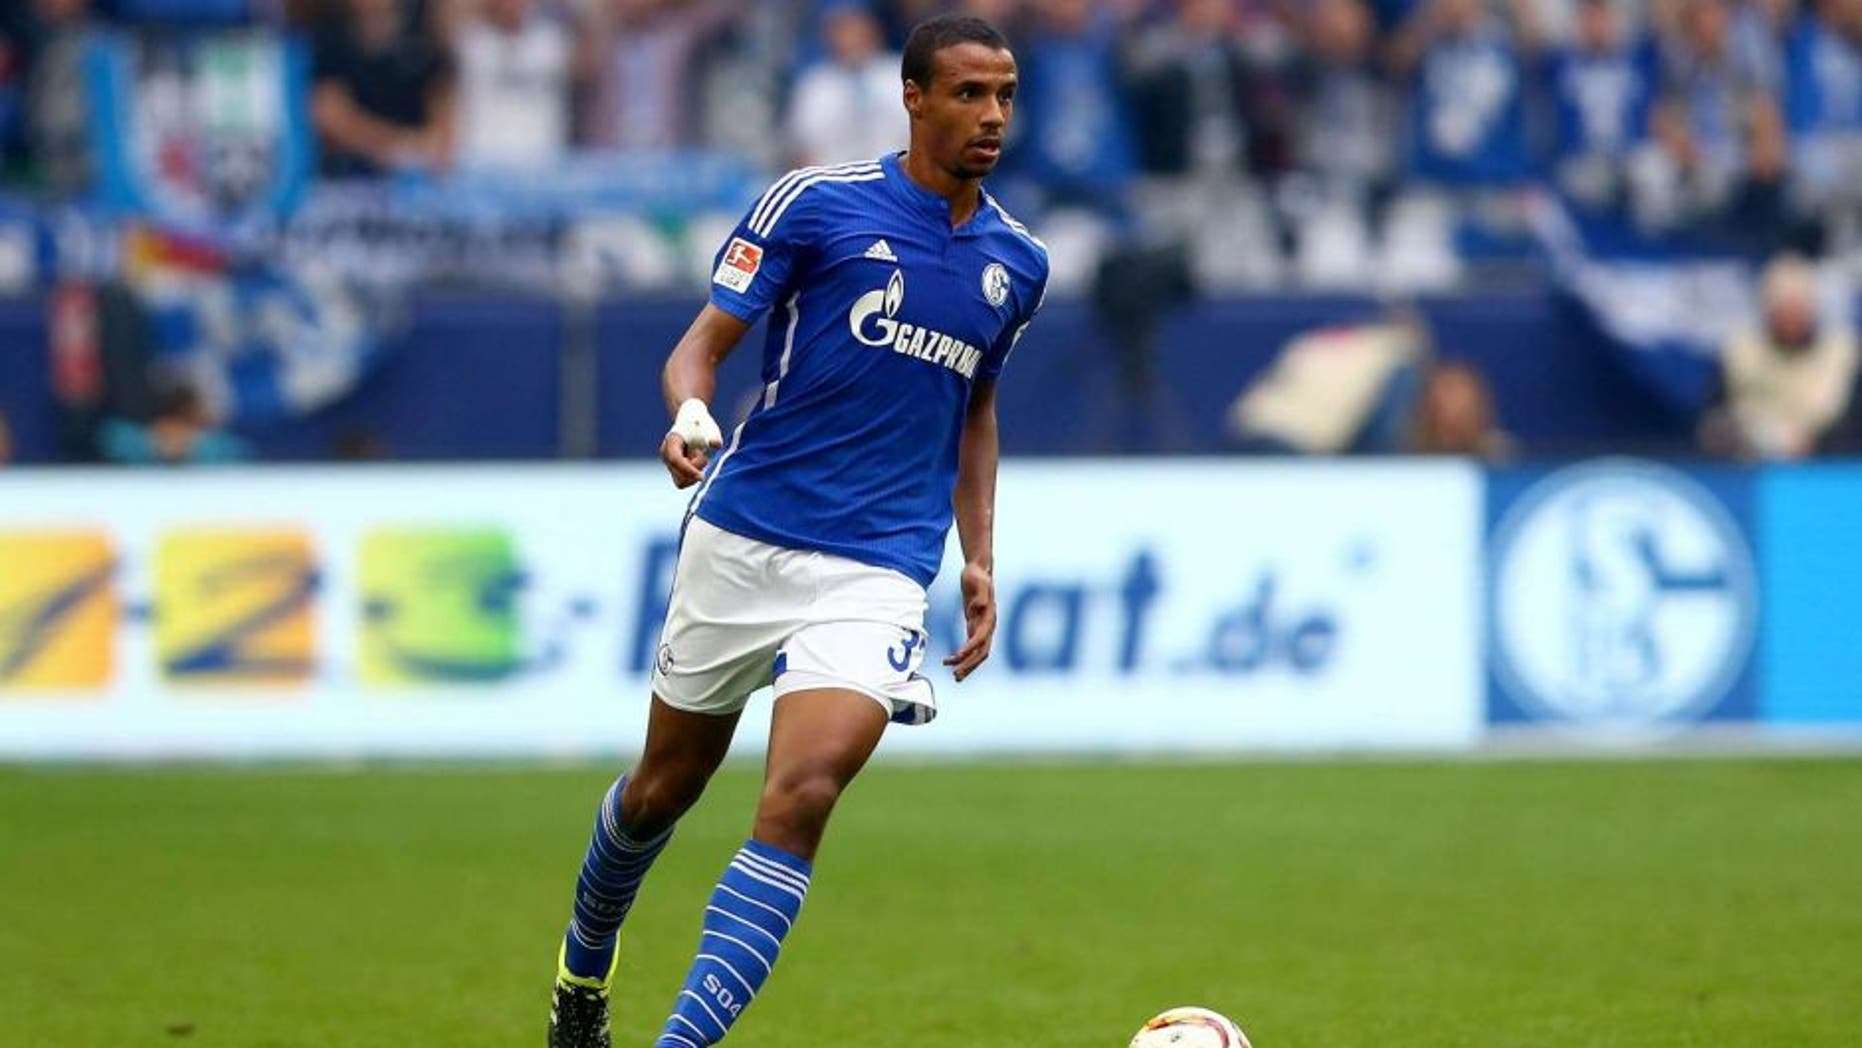 GELSENKIRCHEN, GERMANY - OCTOBER 04: Joel Matip of Schalke runs with the ball during the Bundesliga match between FC Schalke 04 and 1. FC Koeln at Veltins-Arena on October 4, 2015 in Gelsenkirchen, Germany. (Photo by Christof Koepsel/Bongarts/Getty Images)